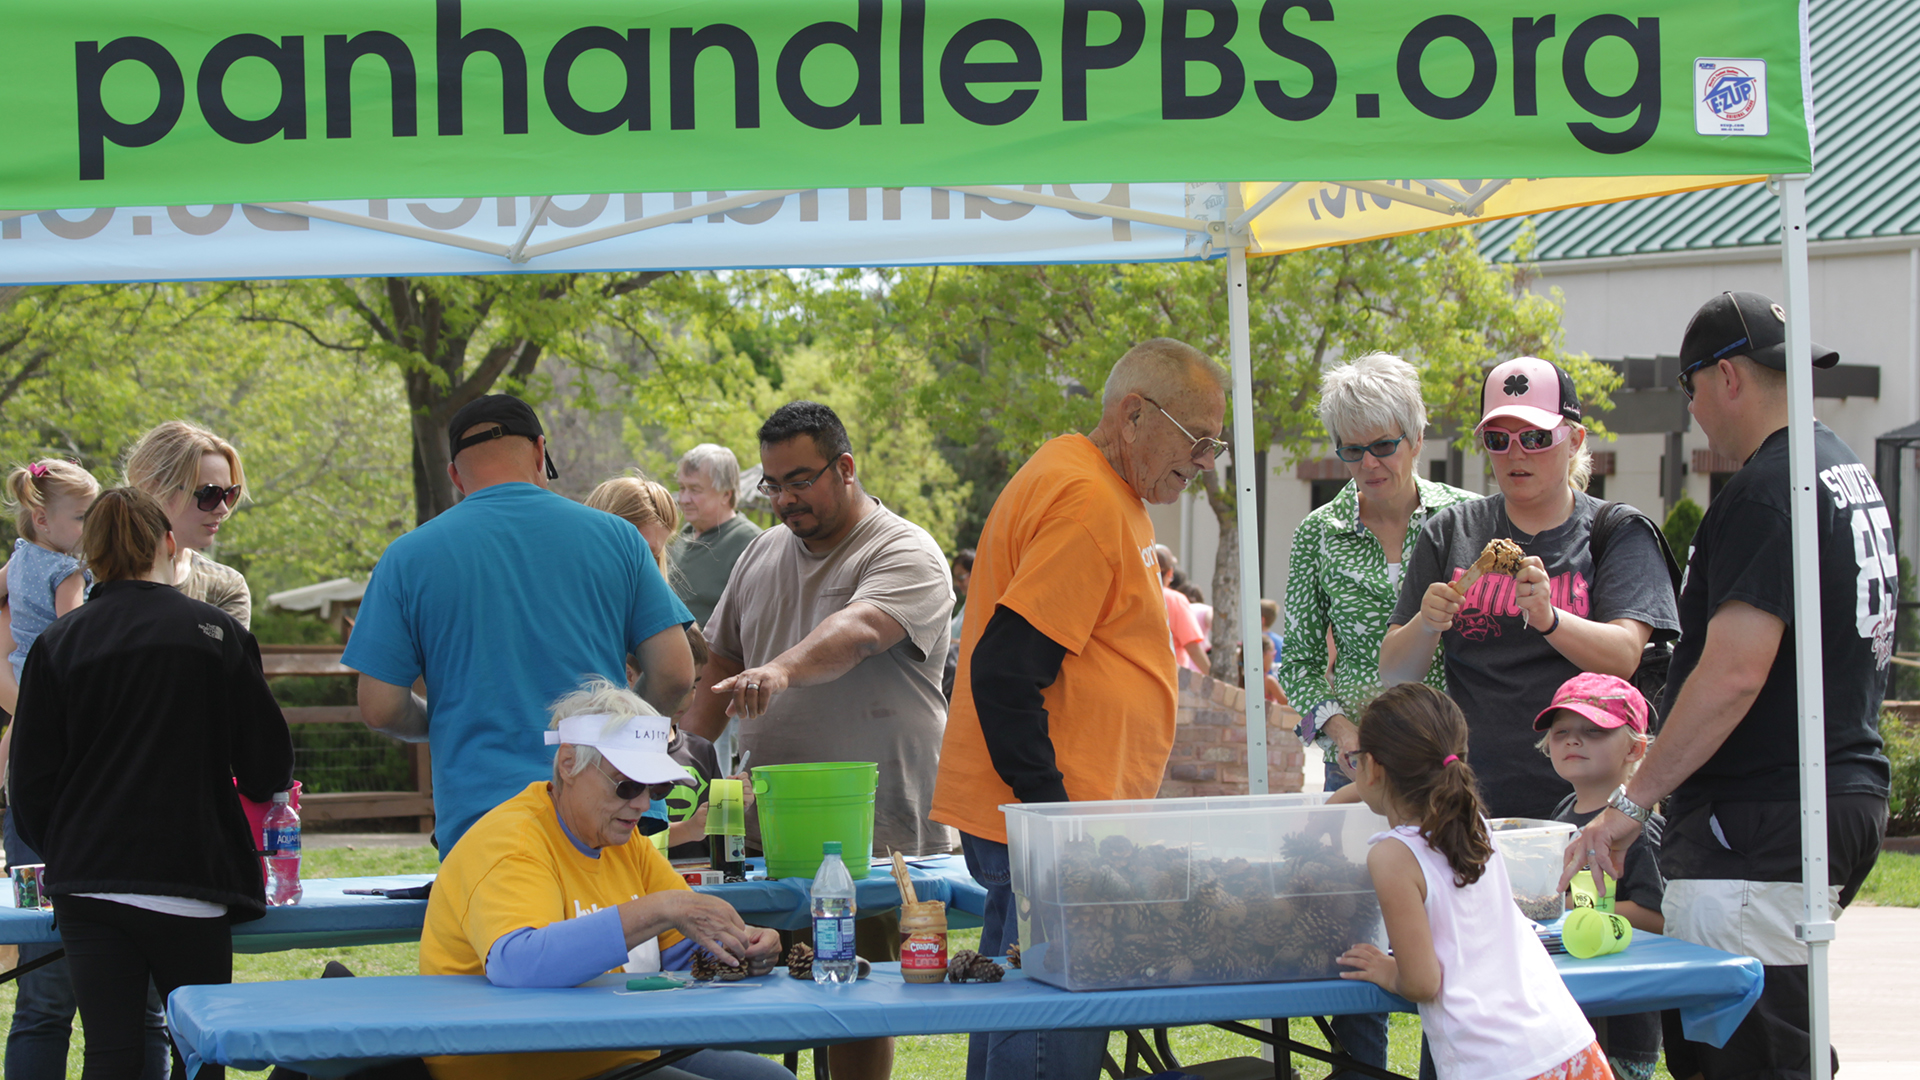 Earth Day celebrations to include Wildcat Bluff, Amarillo Zoo and Panhandle PBS events